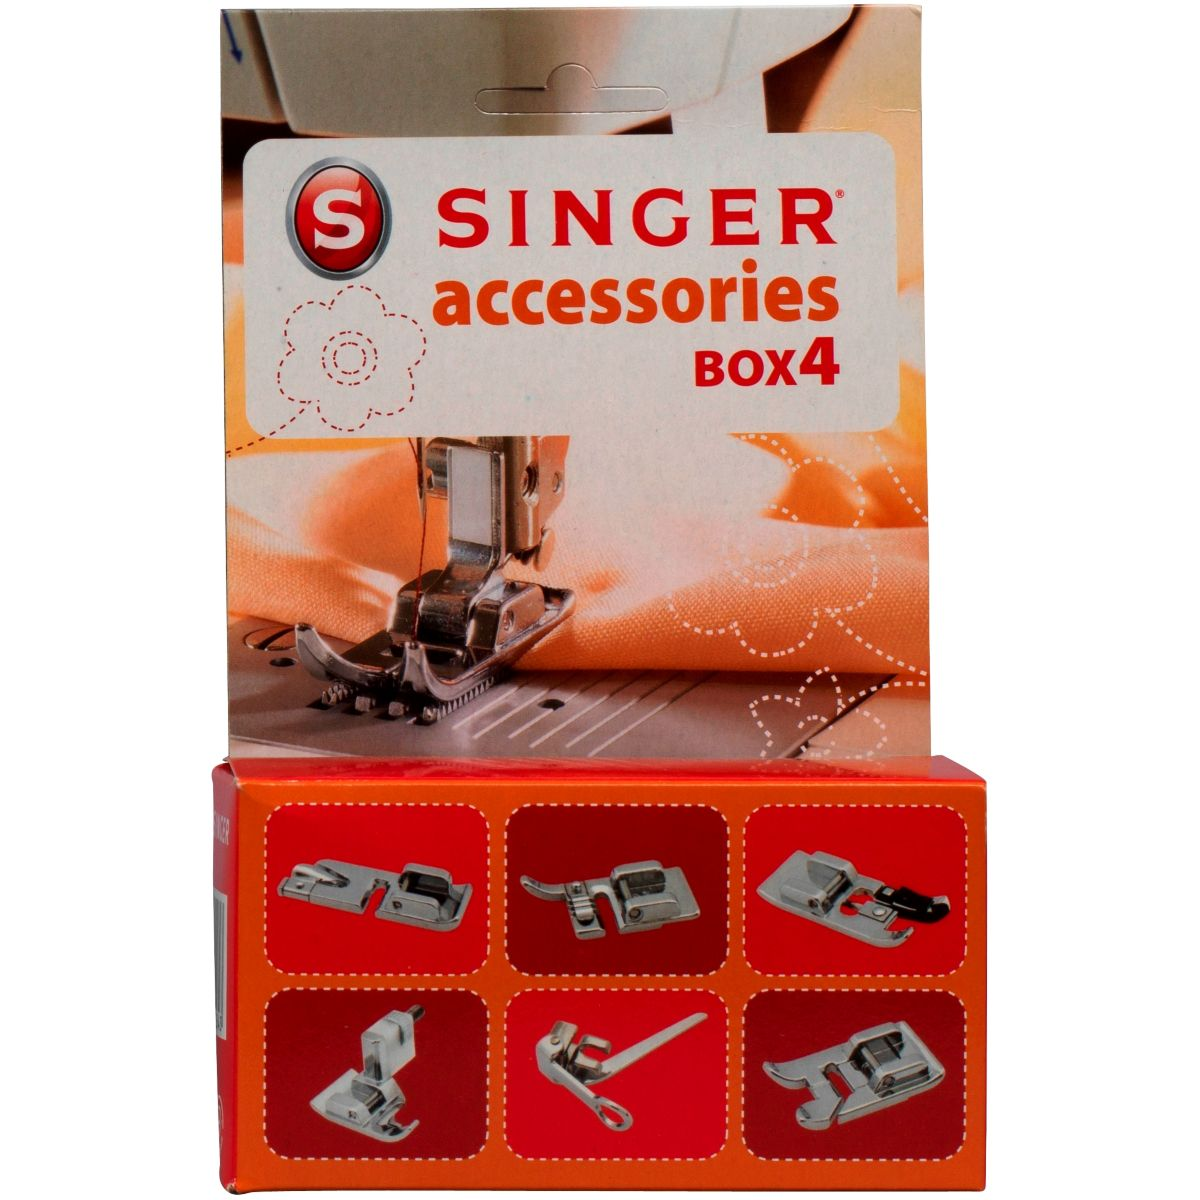 Ciseaux SINGER Box4 (photo)